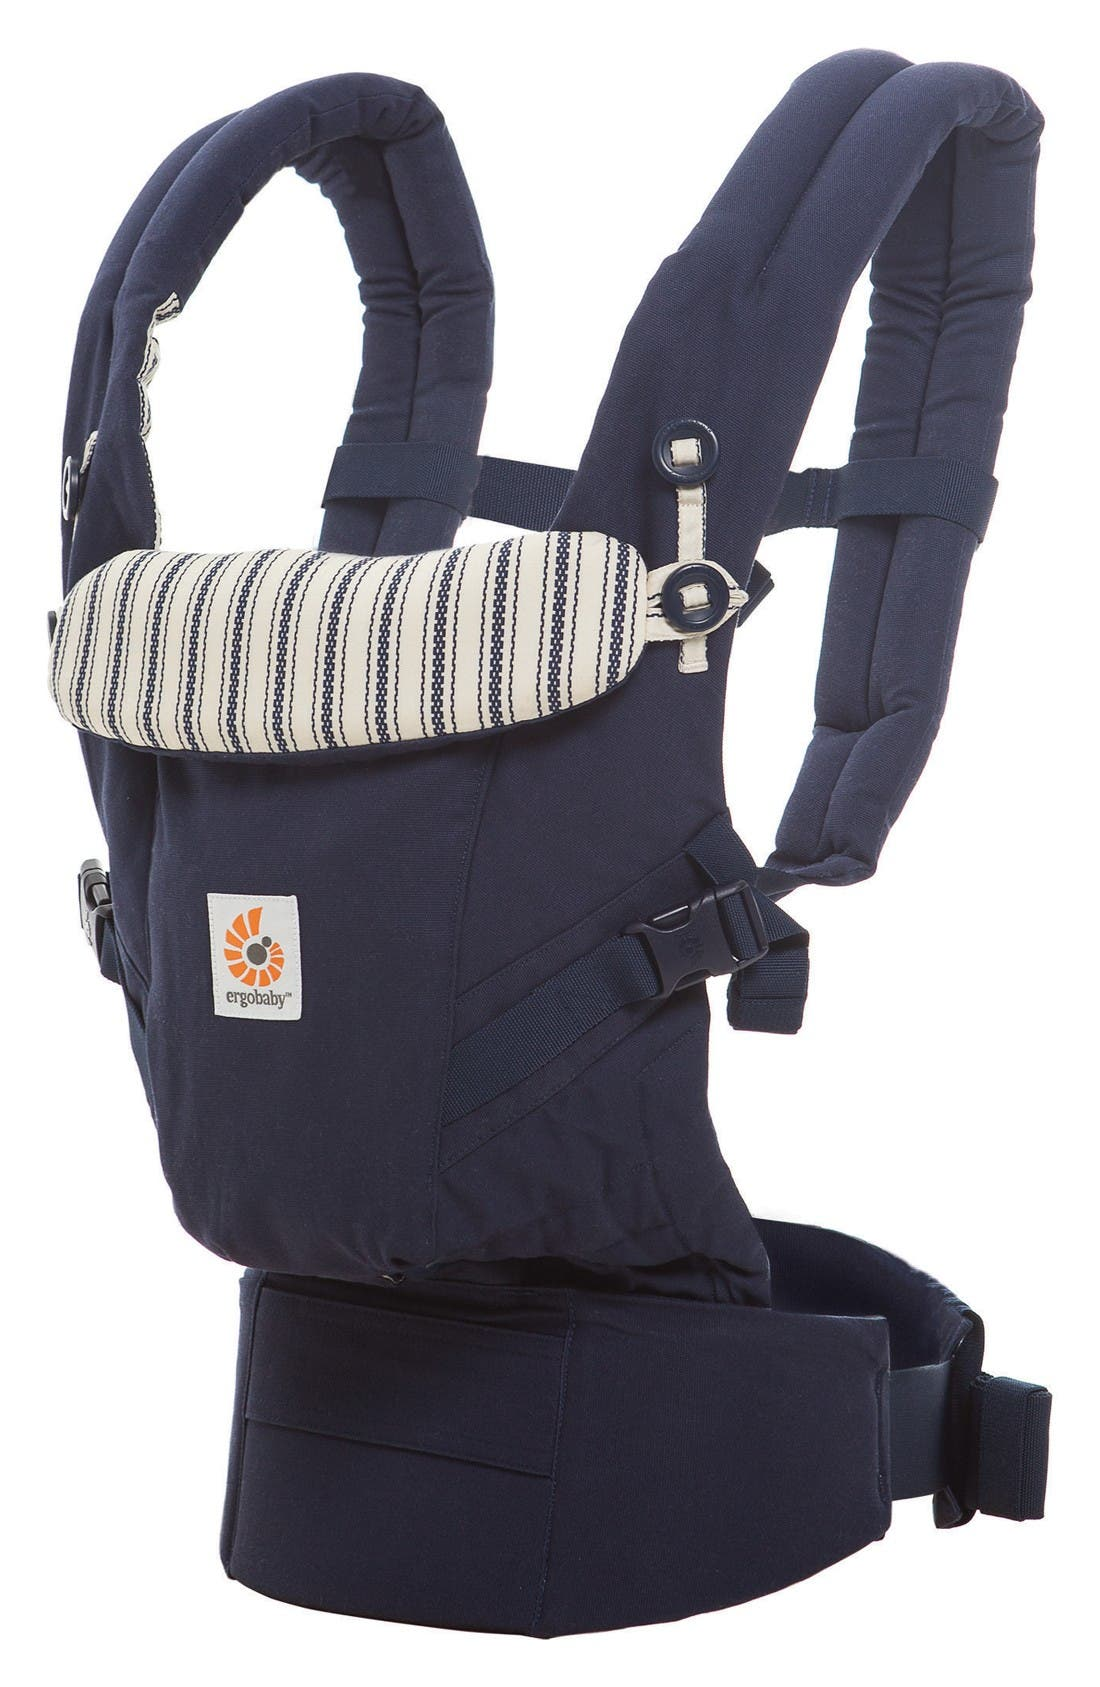 Alternate Image 2  - ERGObaby Three Position ADAPT Baby Carrier